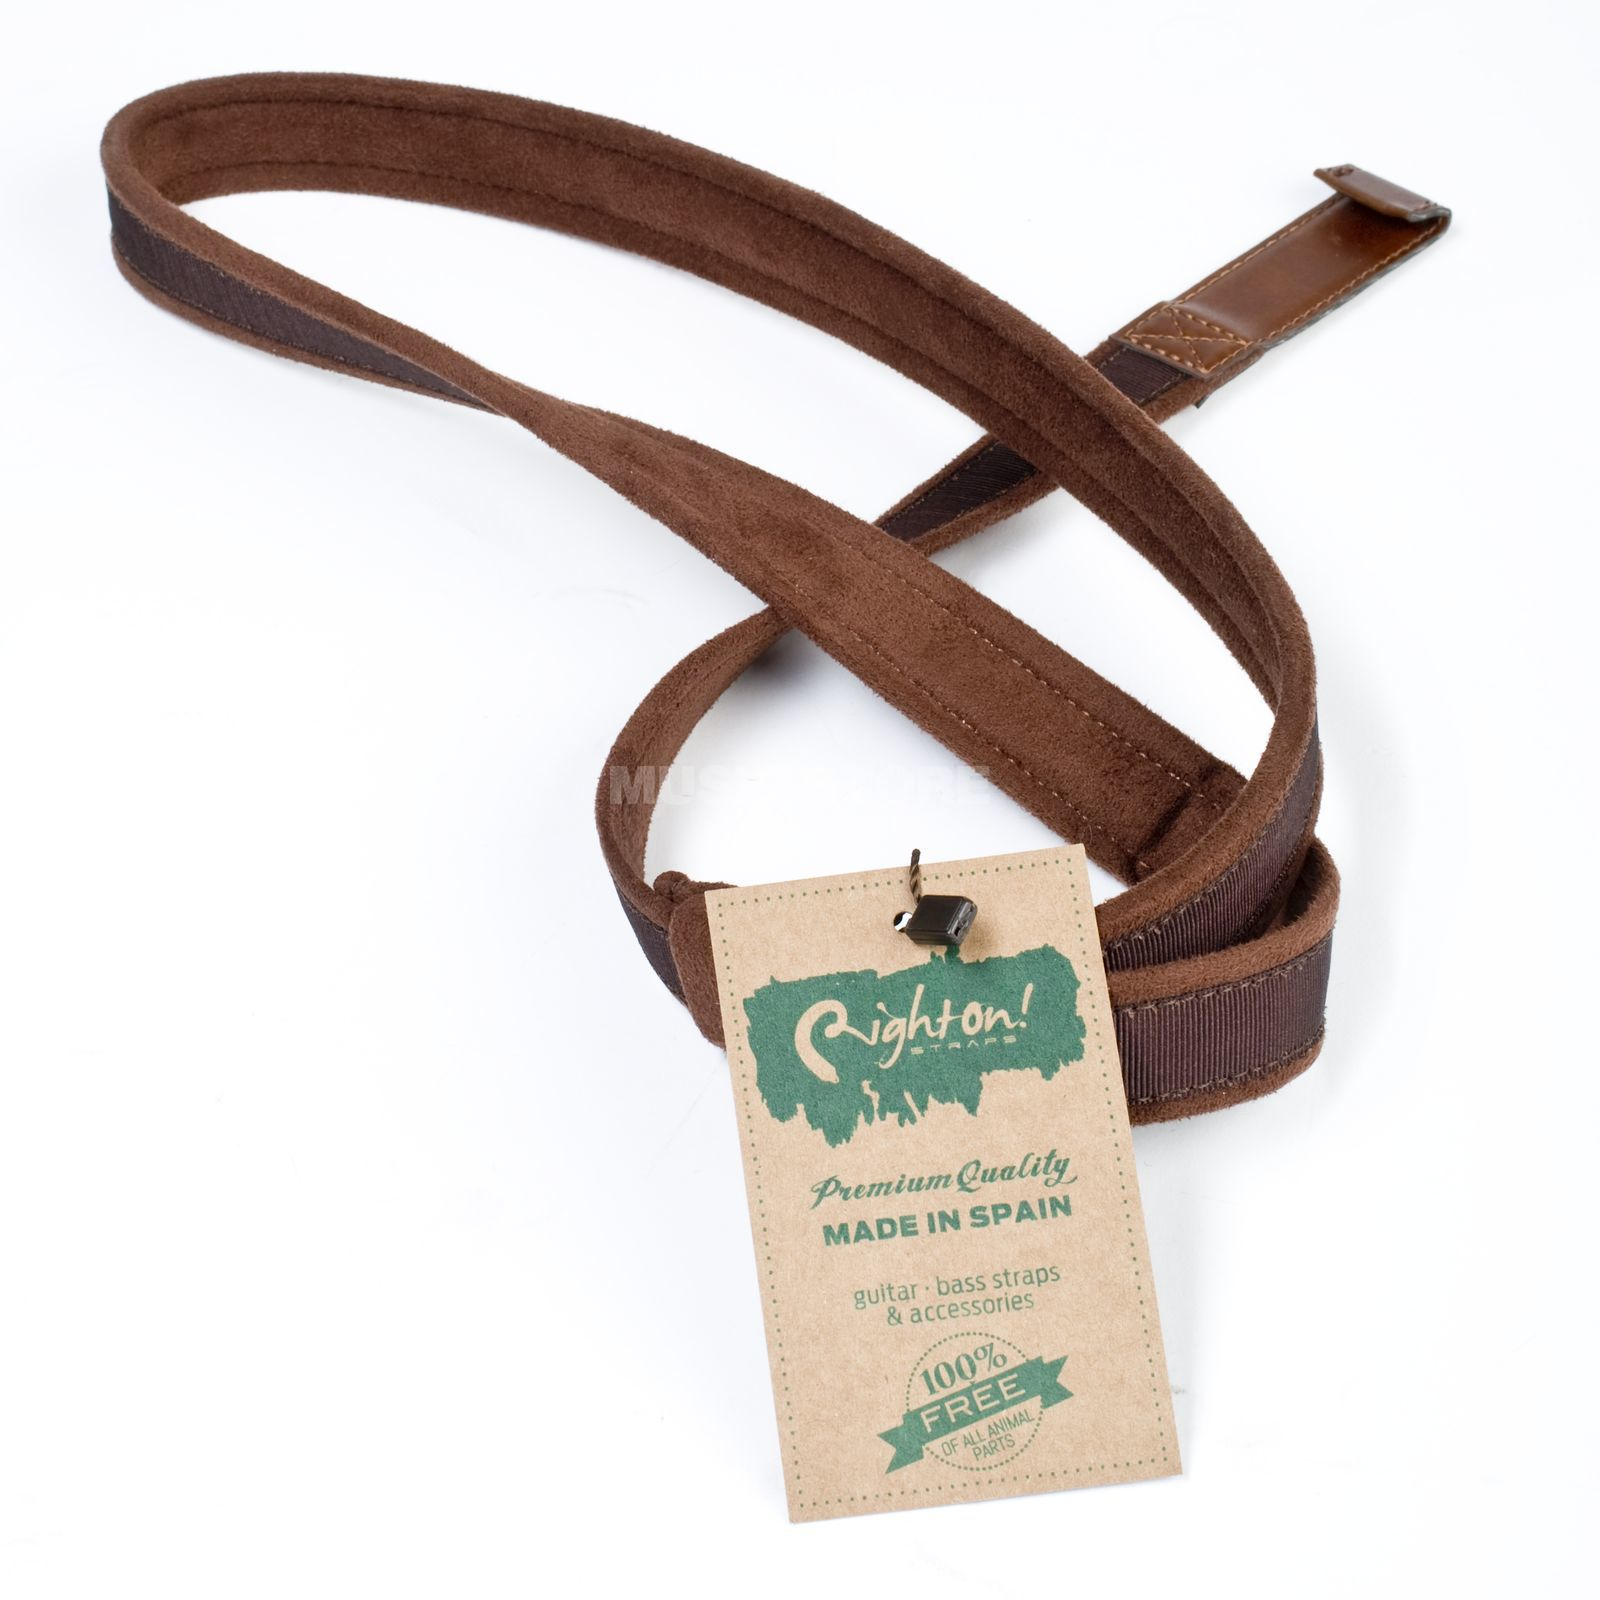 RightOn! Straps Nylon Hook Brown Zdjęcie produktu